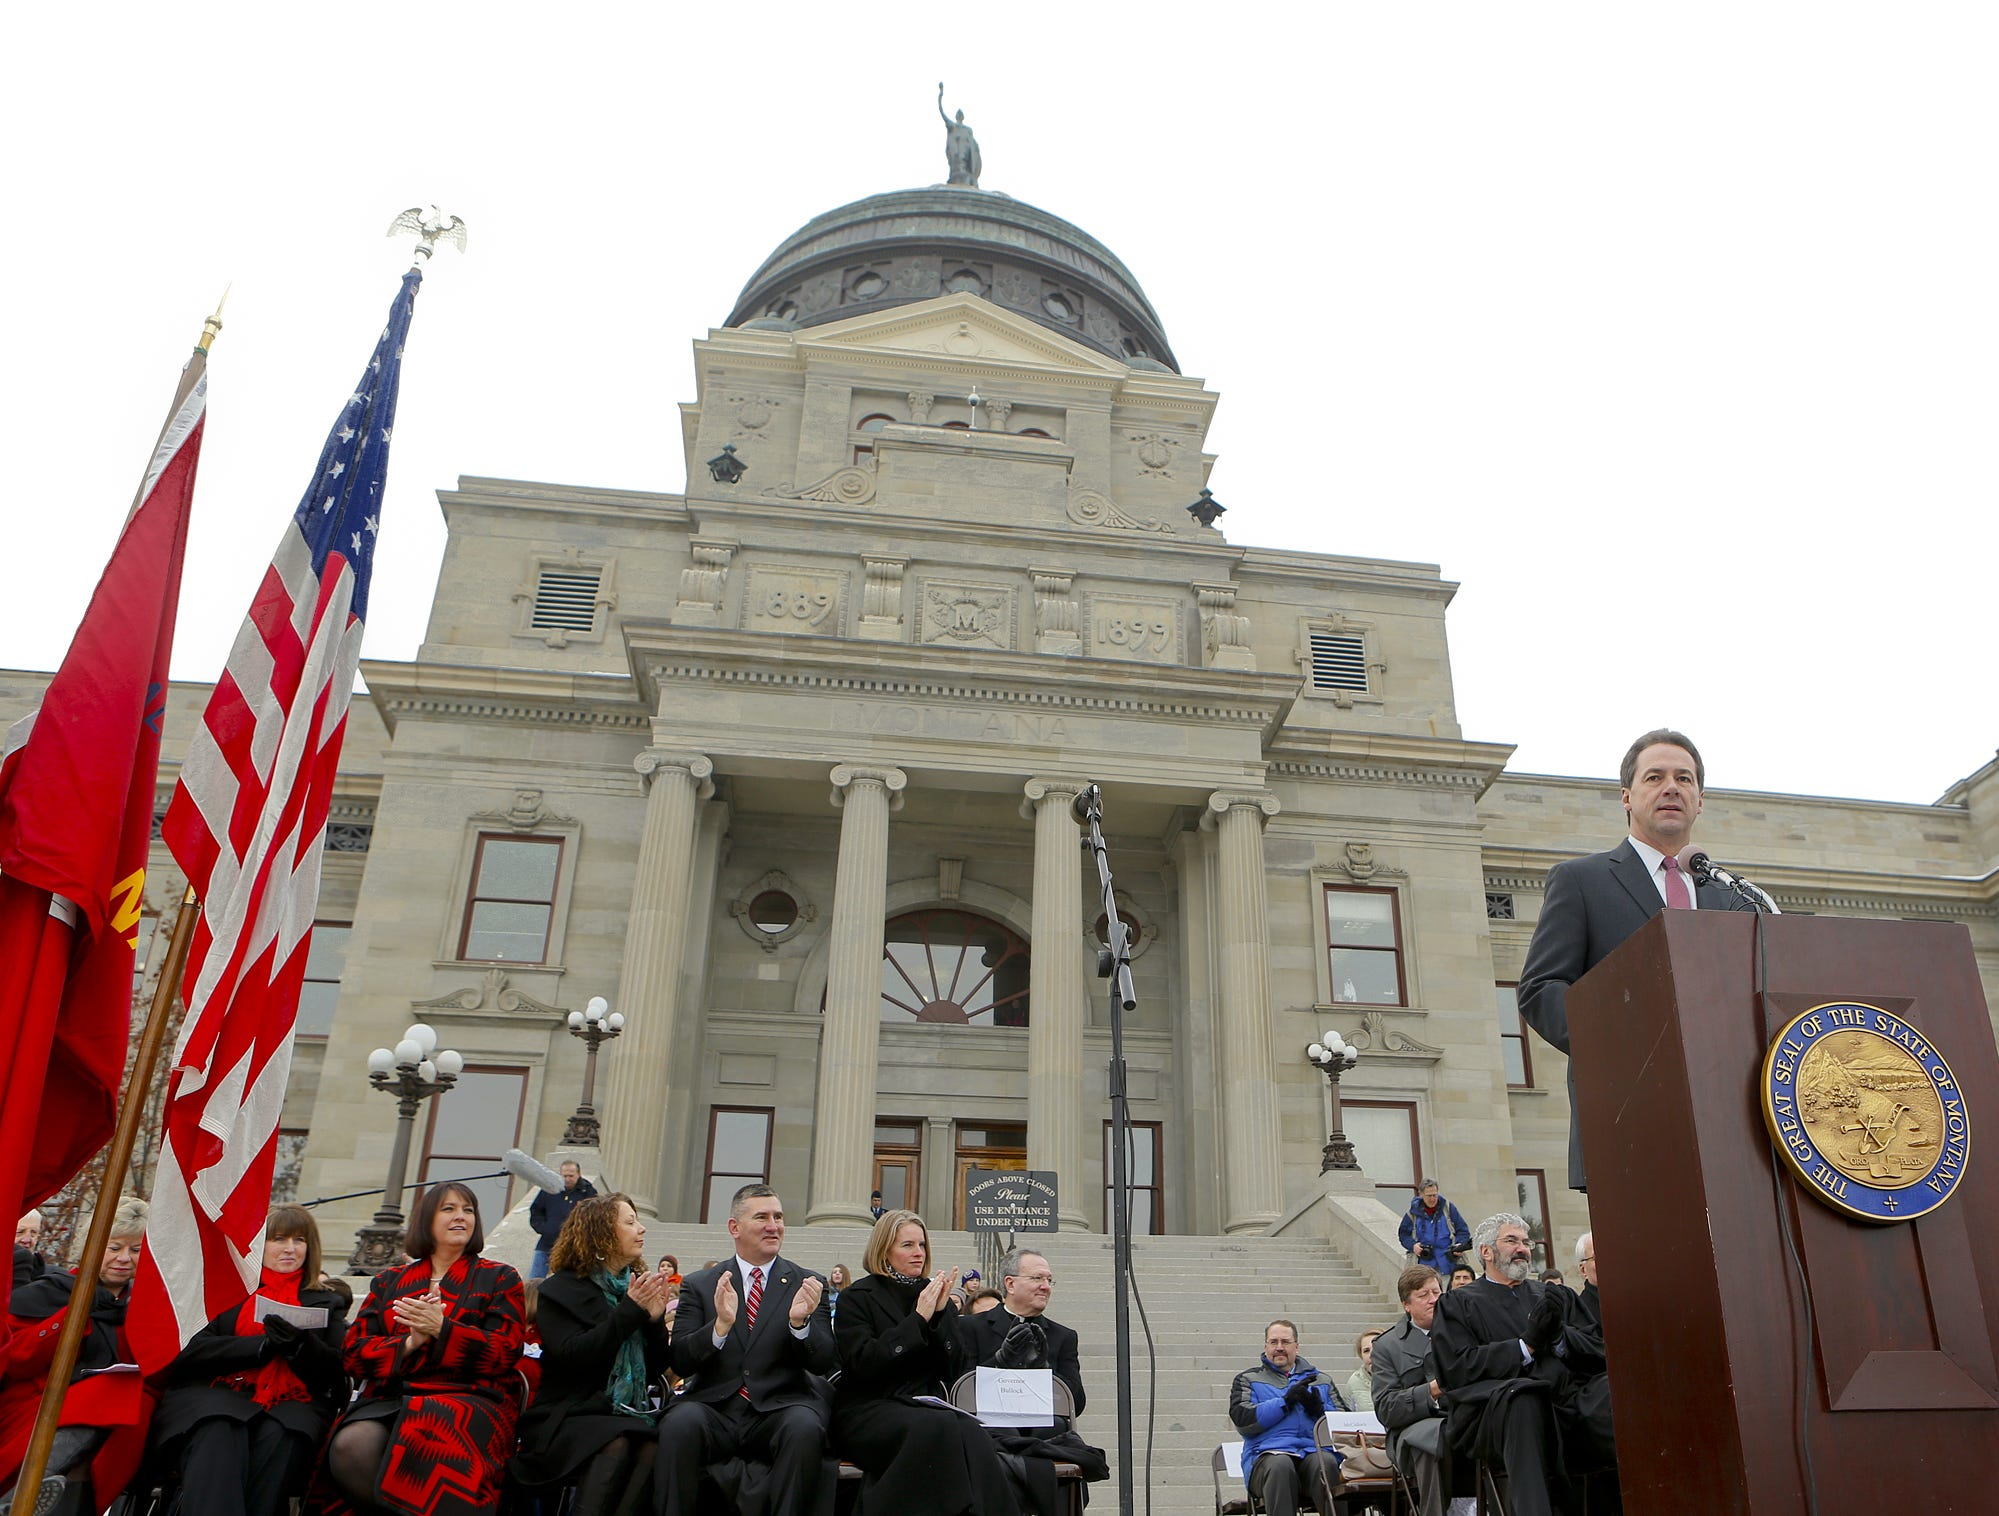 Montana Gov. Steve Bullock speaks during inauguration at the state Capitol in January. Lawmakers had until the end of today to vote on whether to override 19 bill vetoes by Bullock.  TRIBUNE PHOTO/LARRY BECKNER Steve Bullock makes his first speech as governor during Monday's Inauguration ceremony at the State Capitol.  TRIBUNE PHOTO/LARRY BECKNER